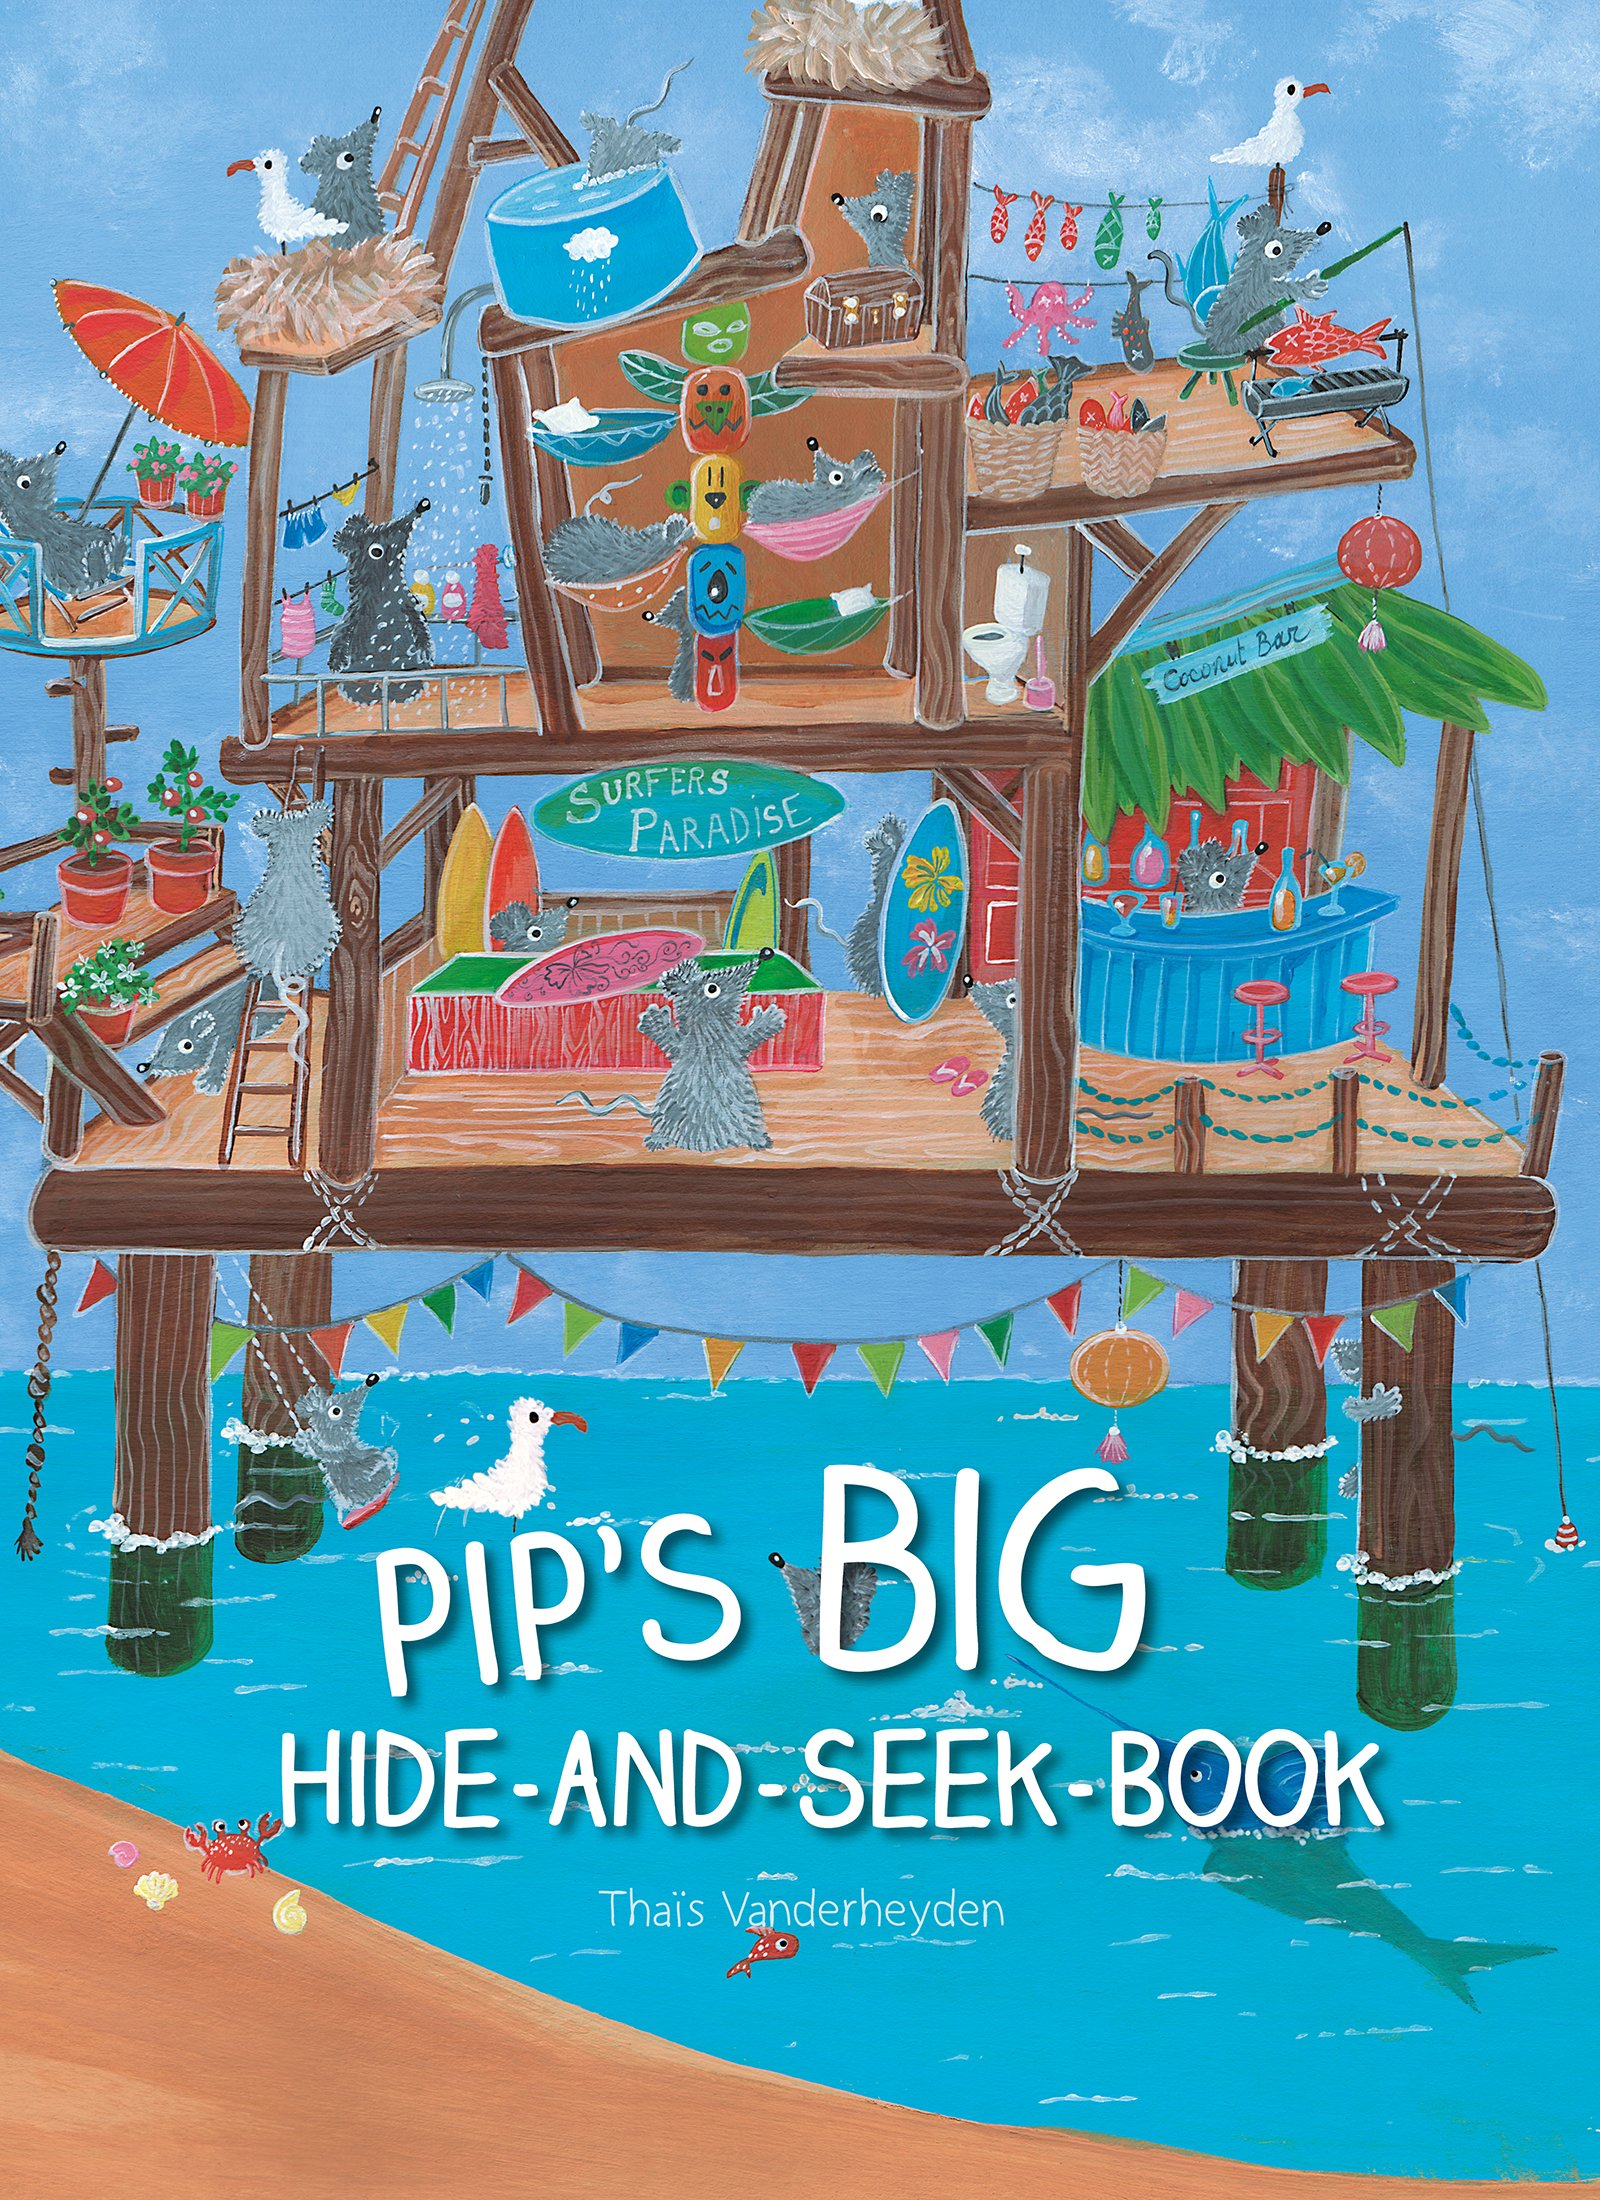 Pip's Big Hide-and-Seek-Book